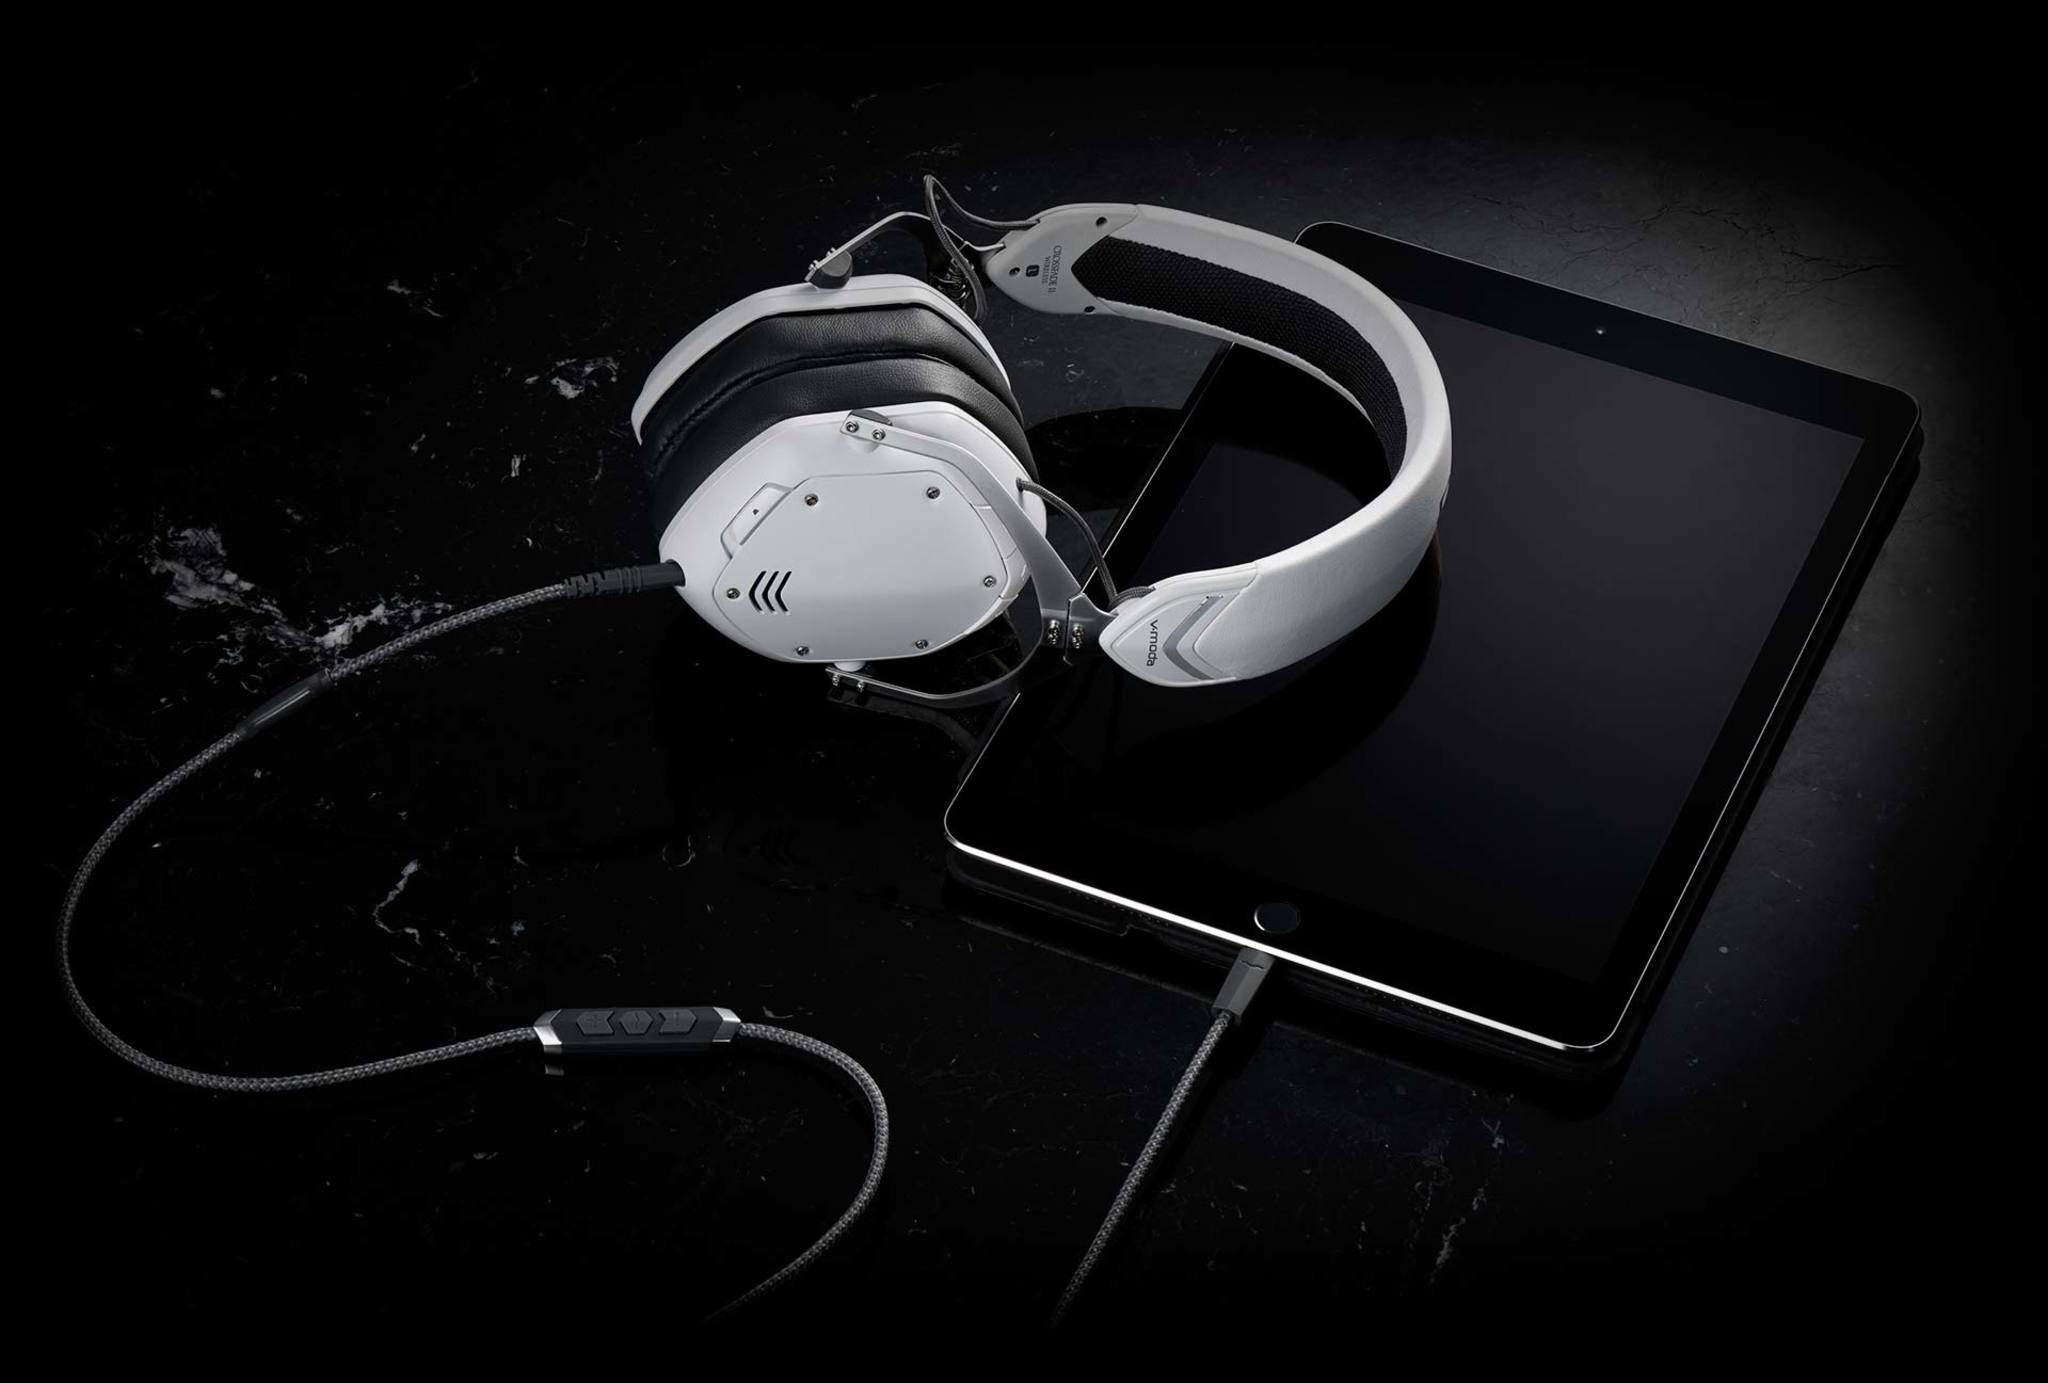 SpeakEasy DAC/AMP Lightning Cable with headphones and iPad